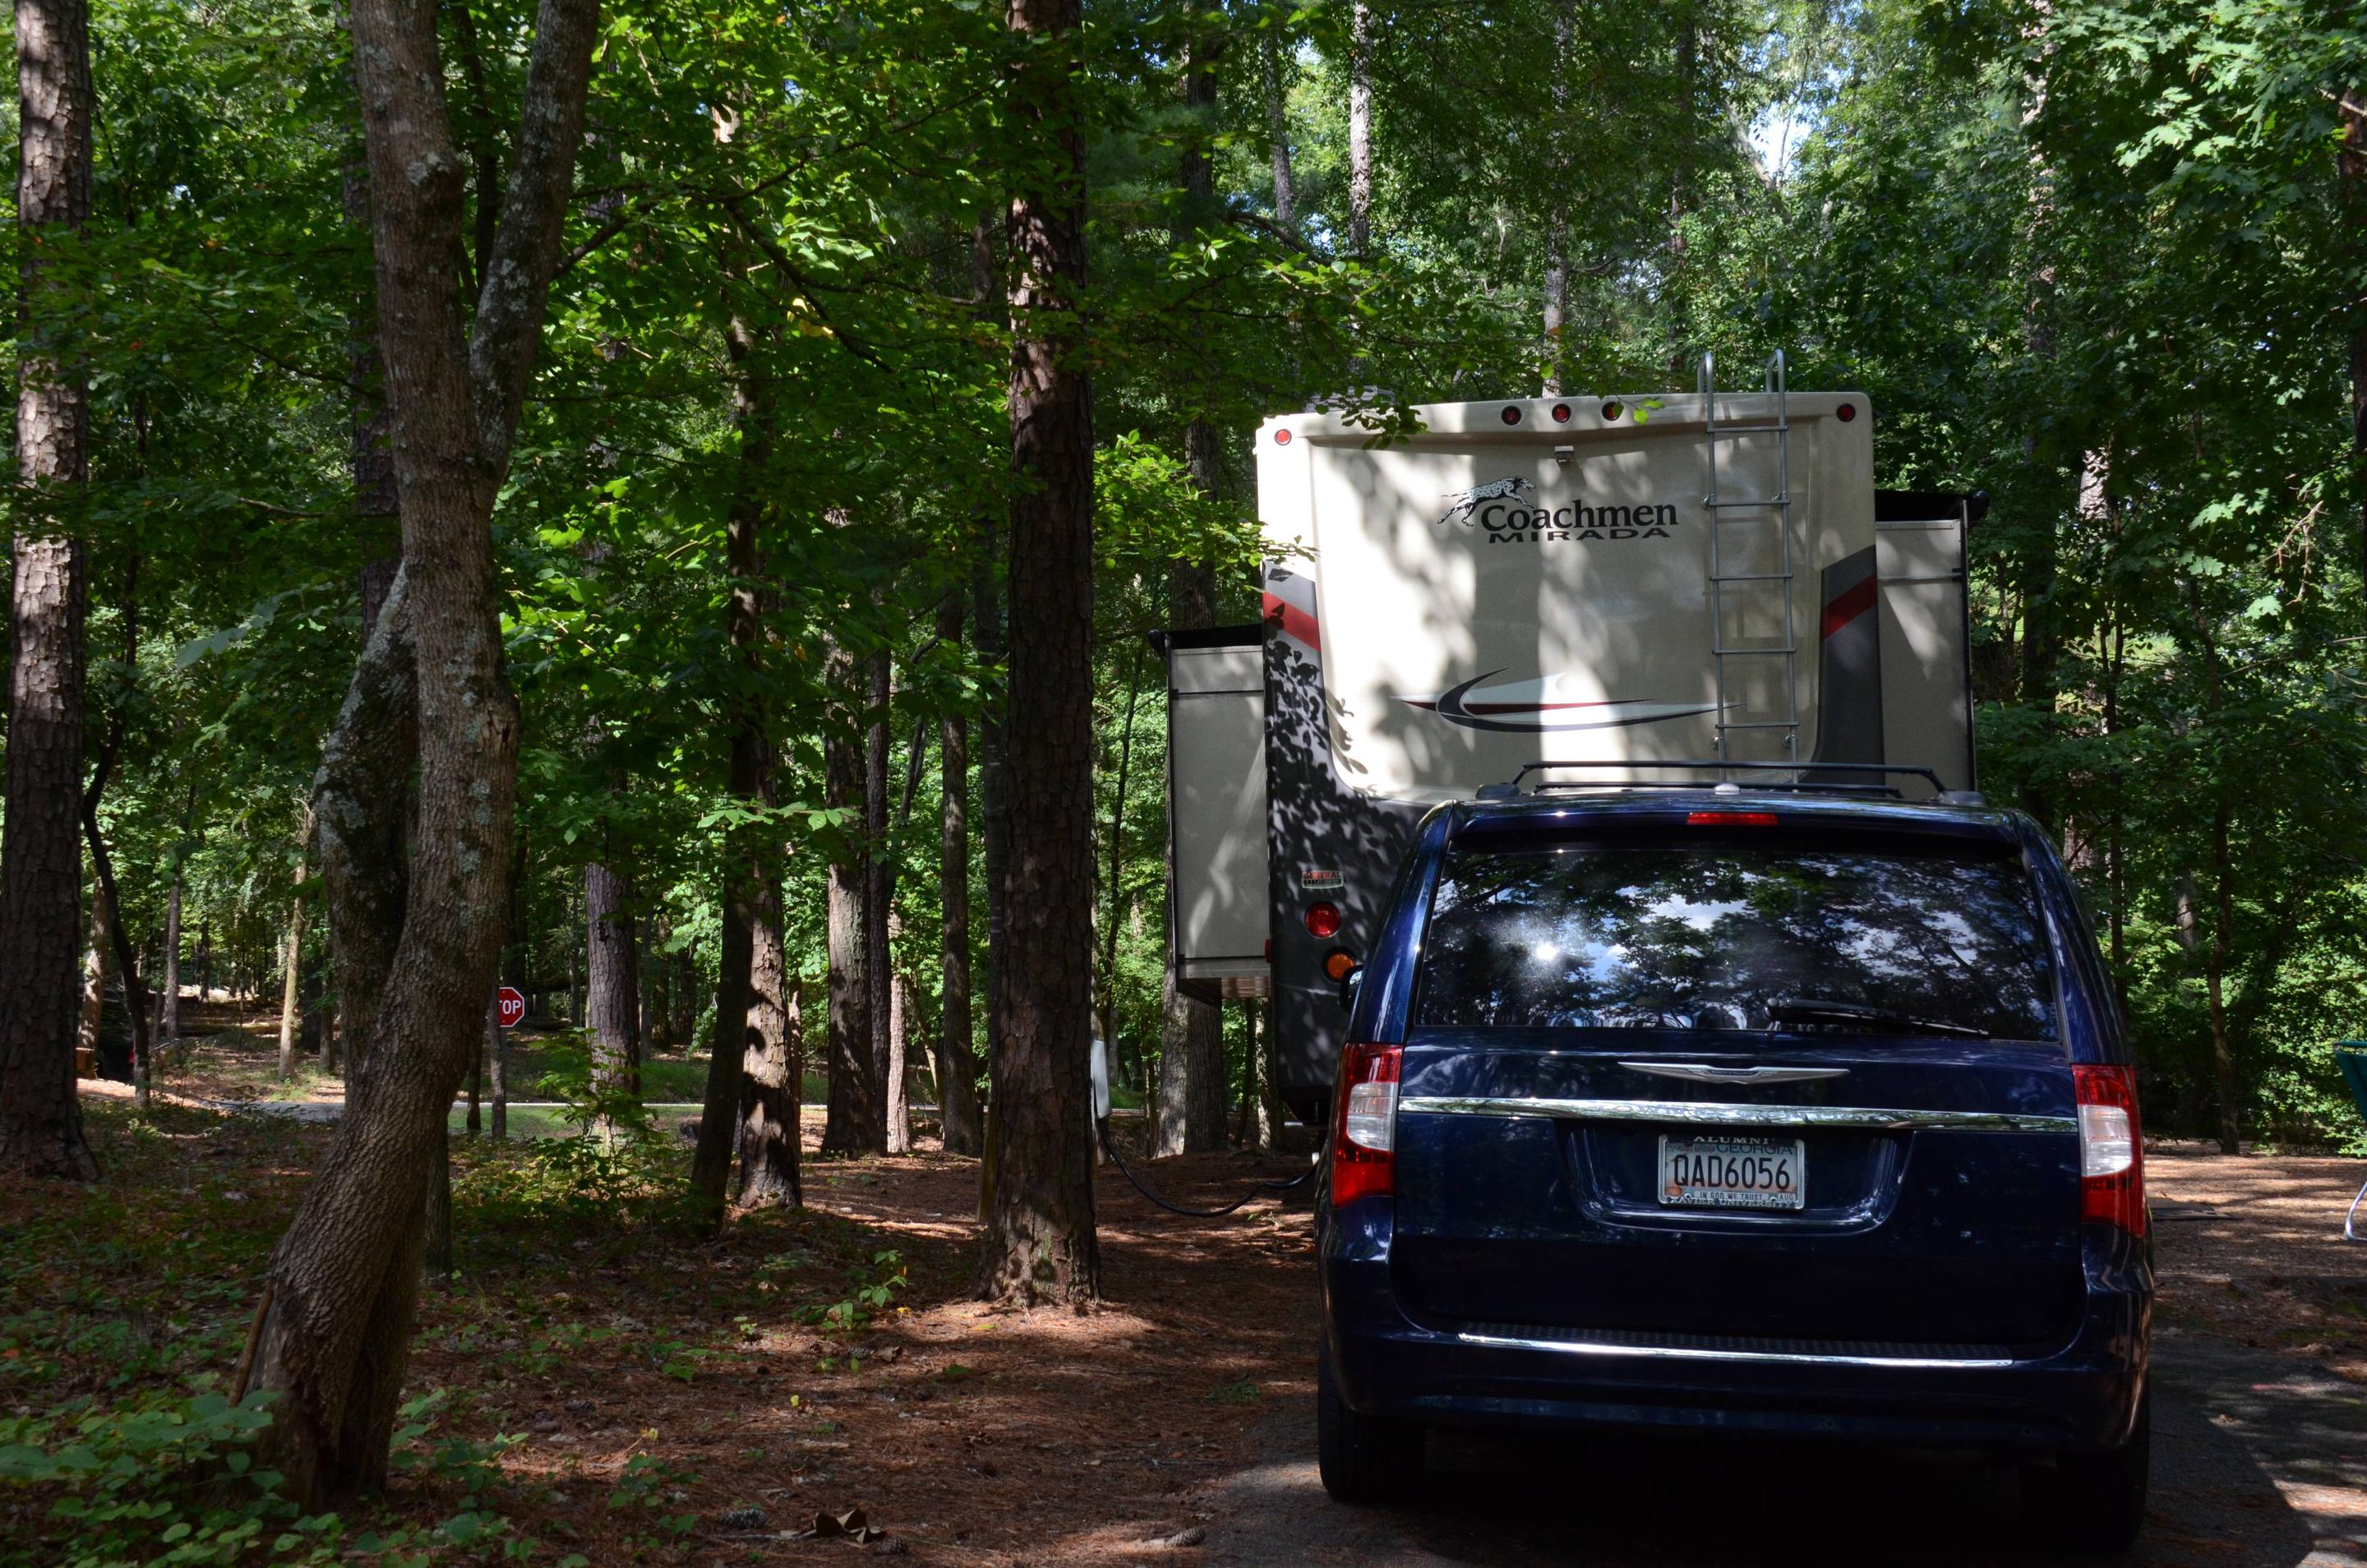 Pull-thru entrance, utilities clearance.McKinney Campground, campsite 19.